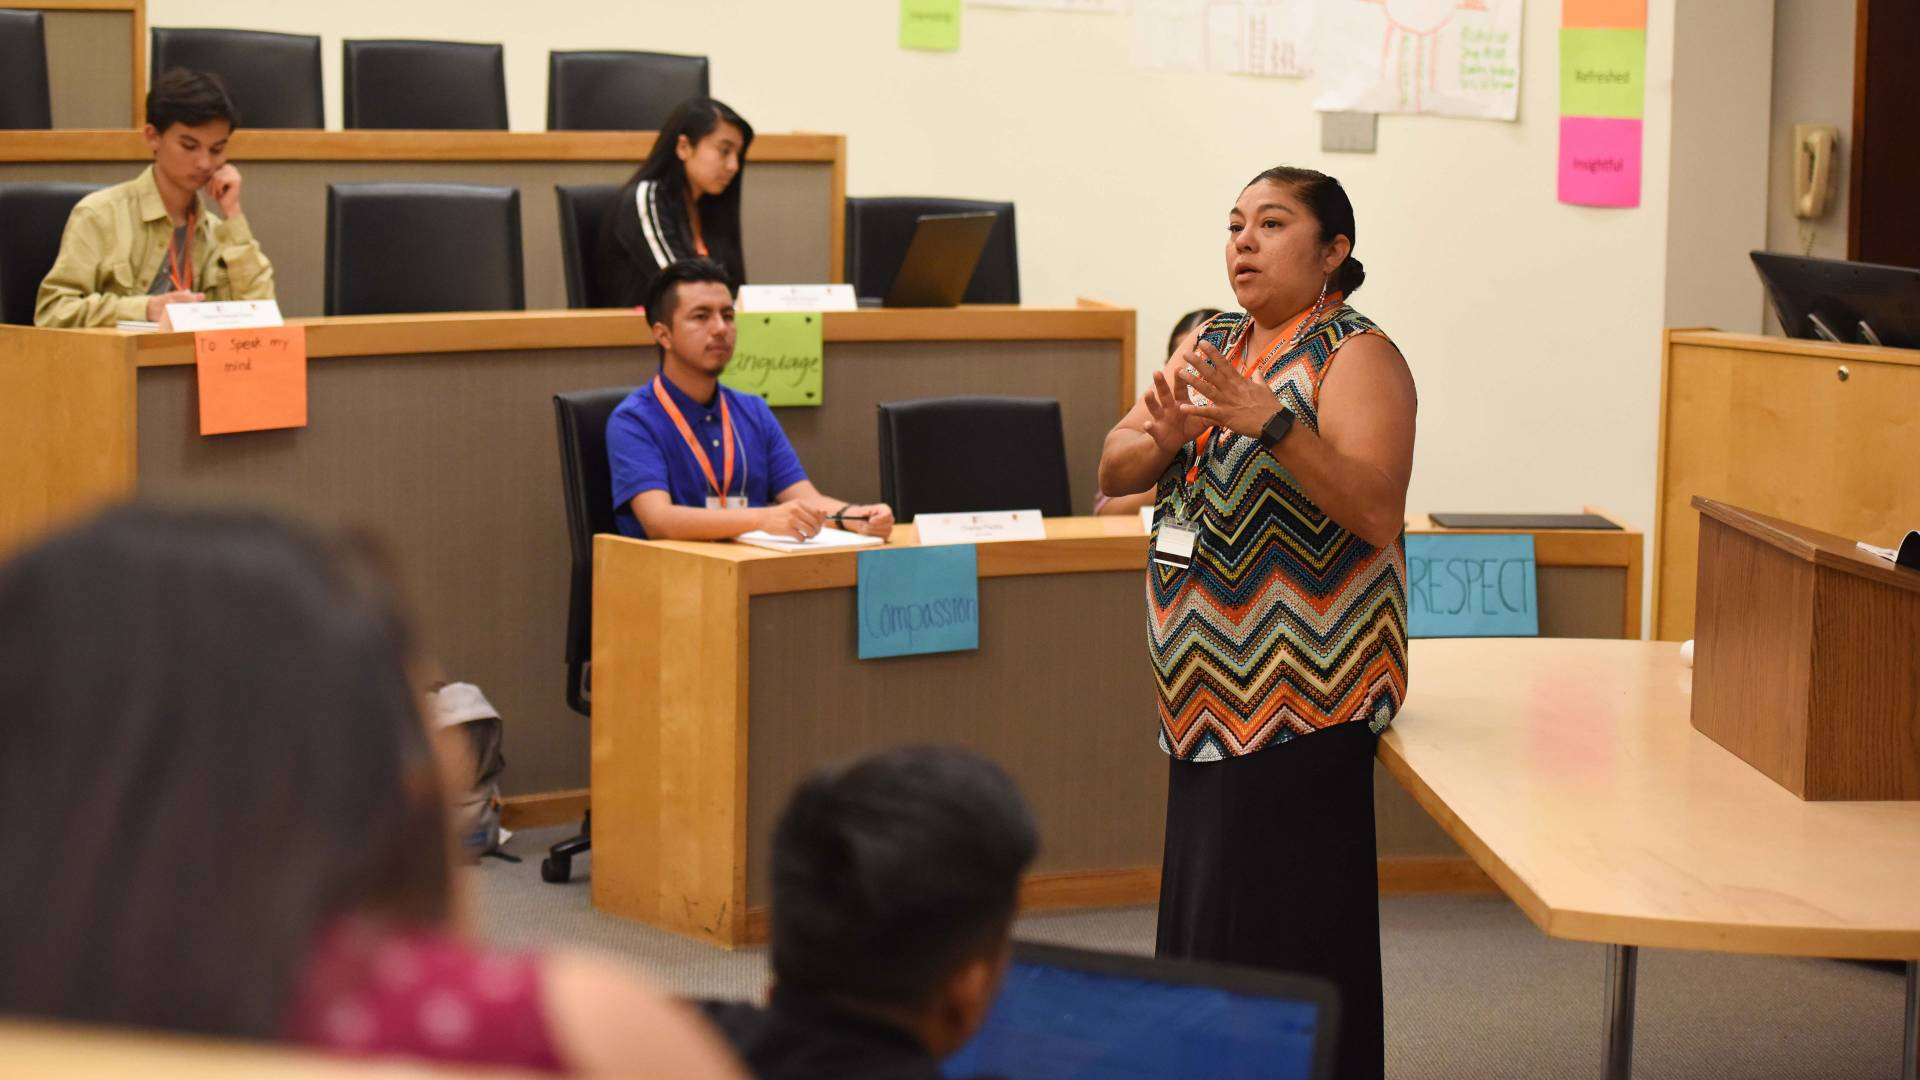 Christie Abeyta, of the Santa Clara/Santo Domingo Pueblo, leads Native American students in a policy discussion